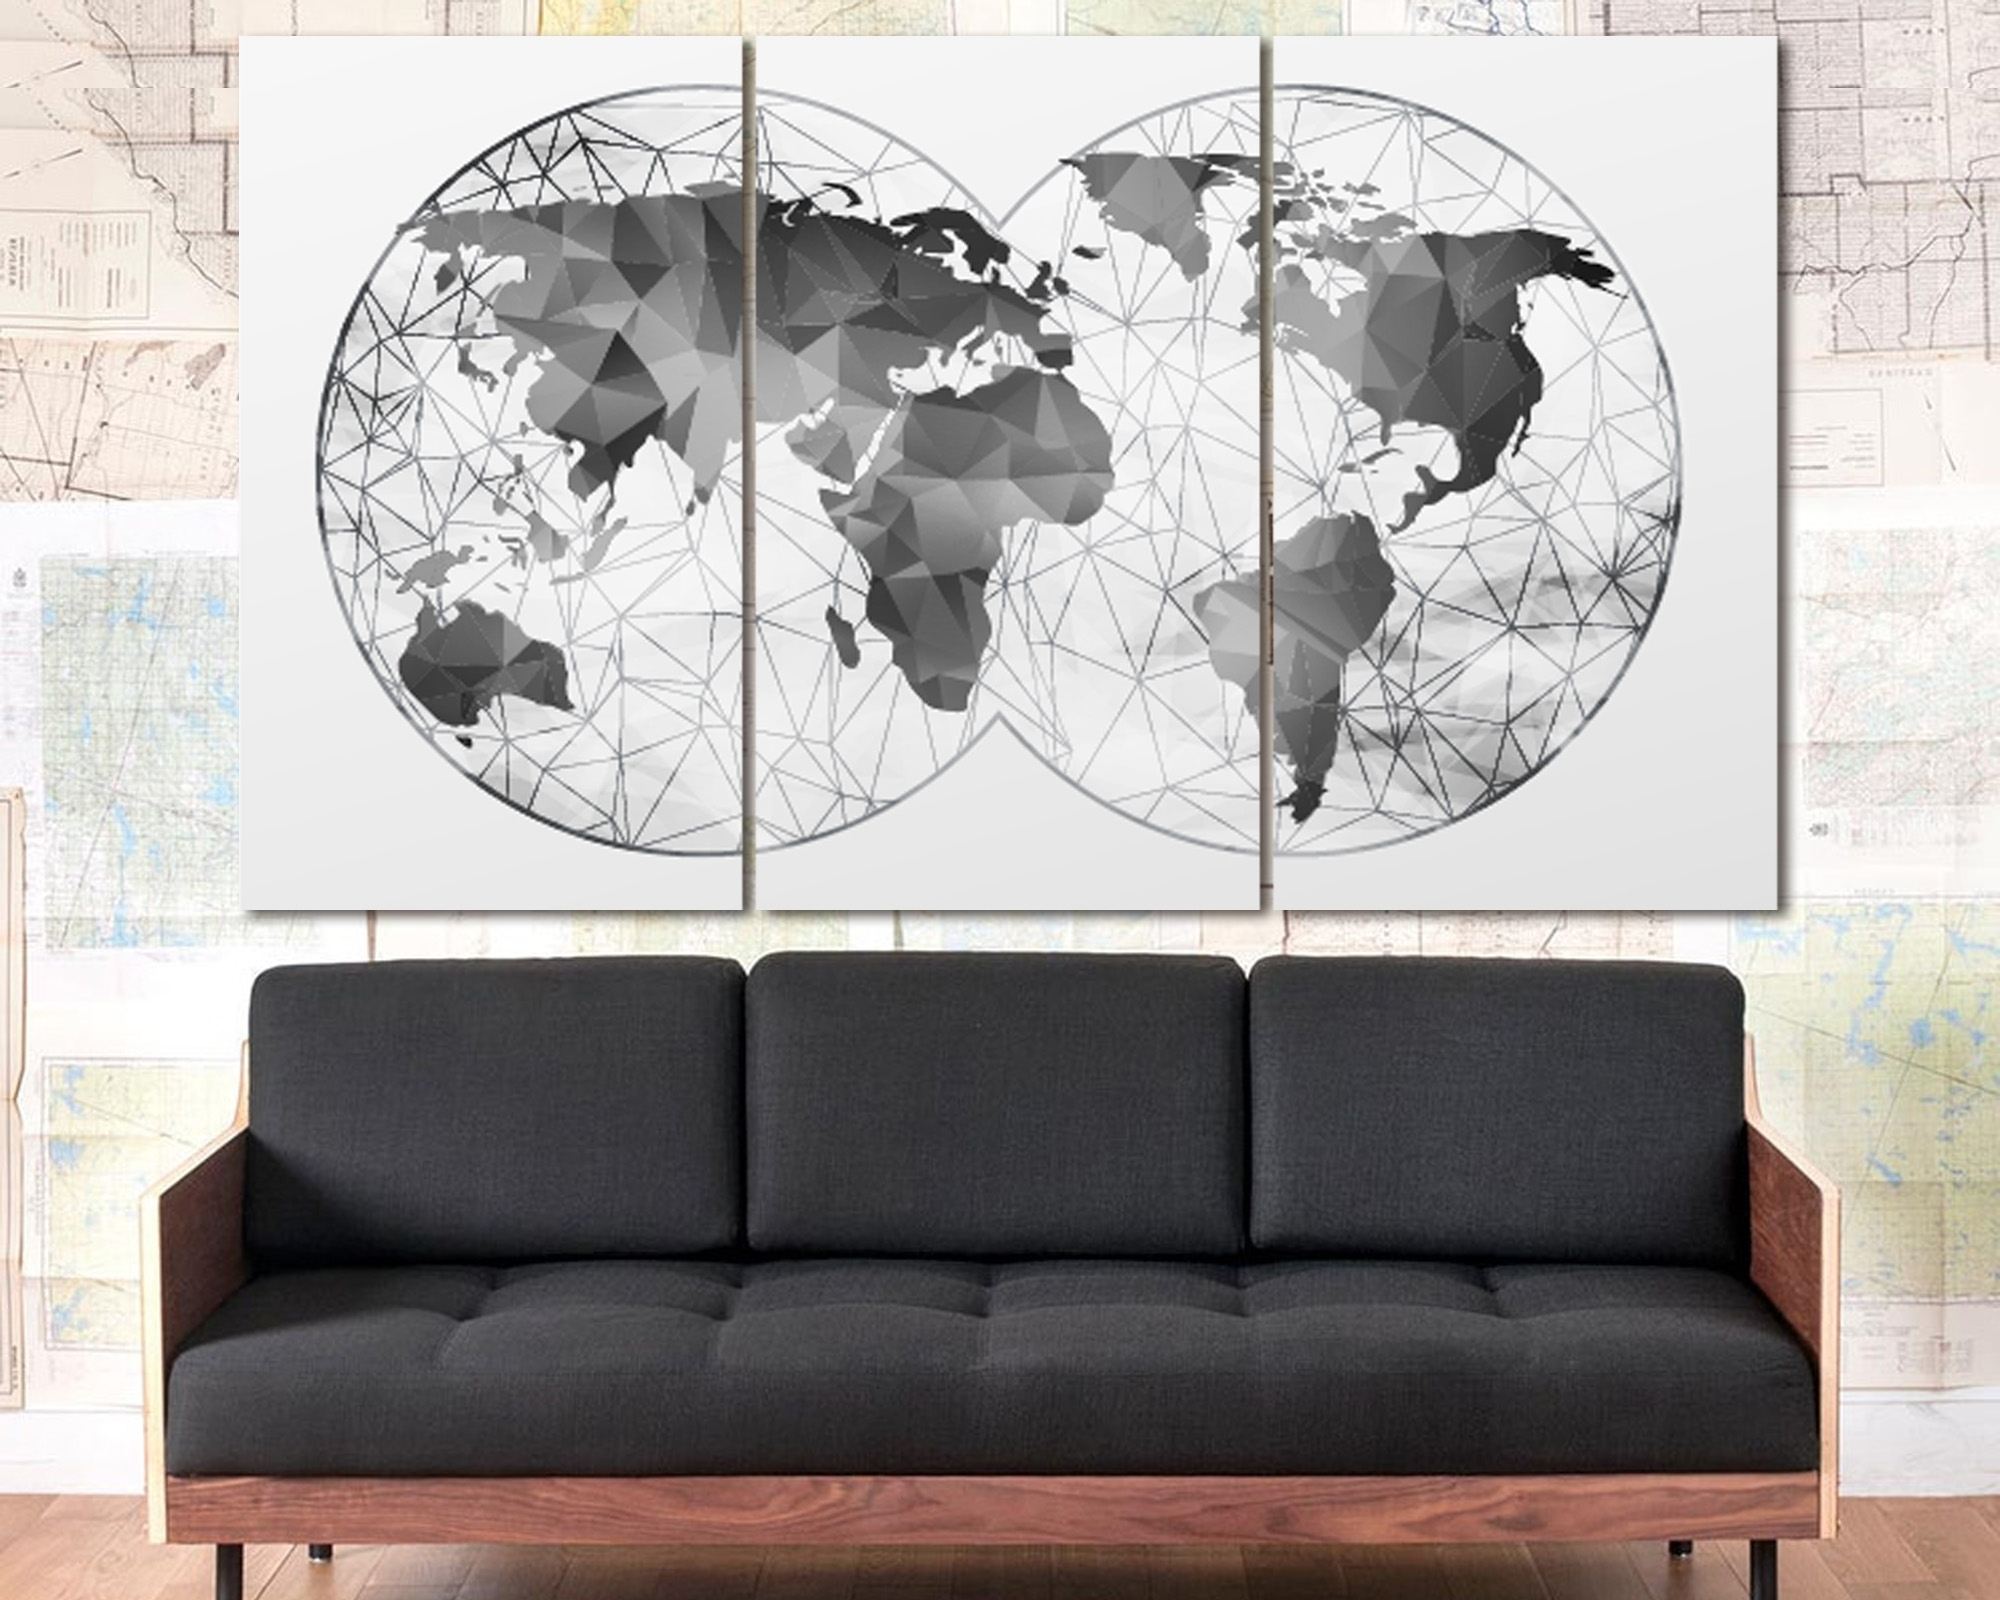 Most Recent Double Hemisphere Black & White Abstract World Map At Texelprintart With Regard To Map Wall Art Prints (View 14 of 20)